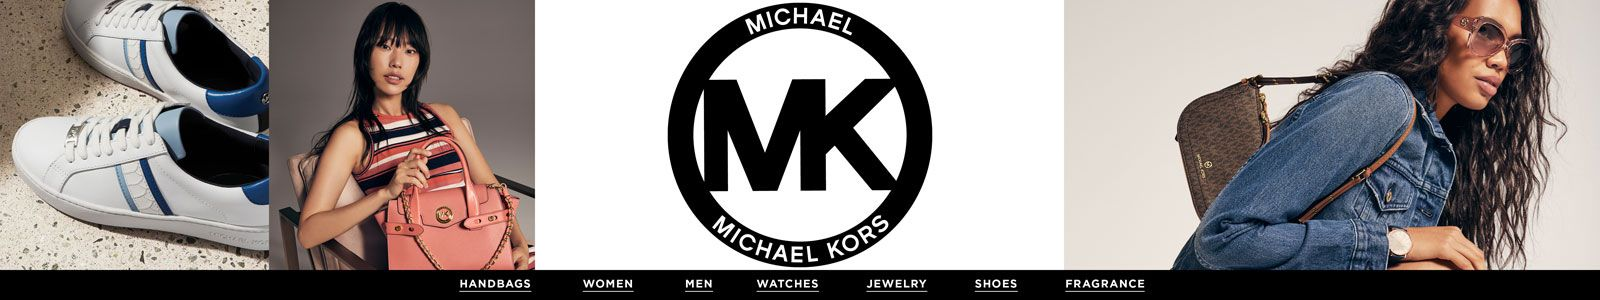 Michael Michael Kors, Handbags, Women, Men, Watches, Jewelry, Shoes, Fragrance